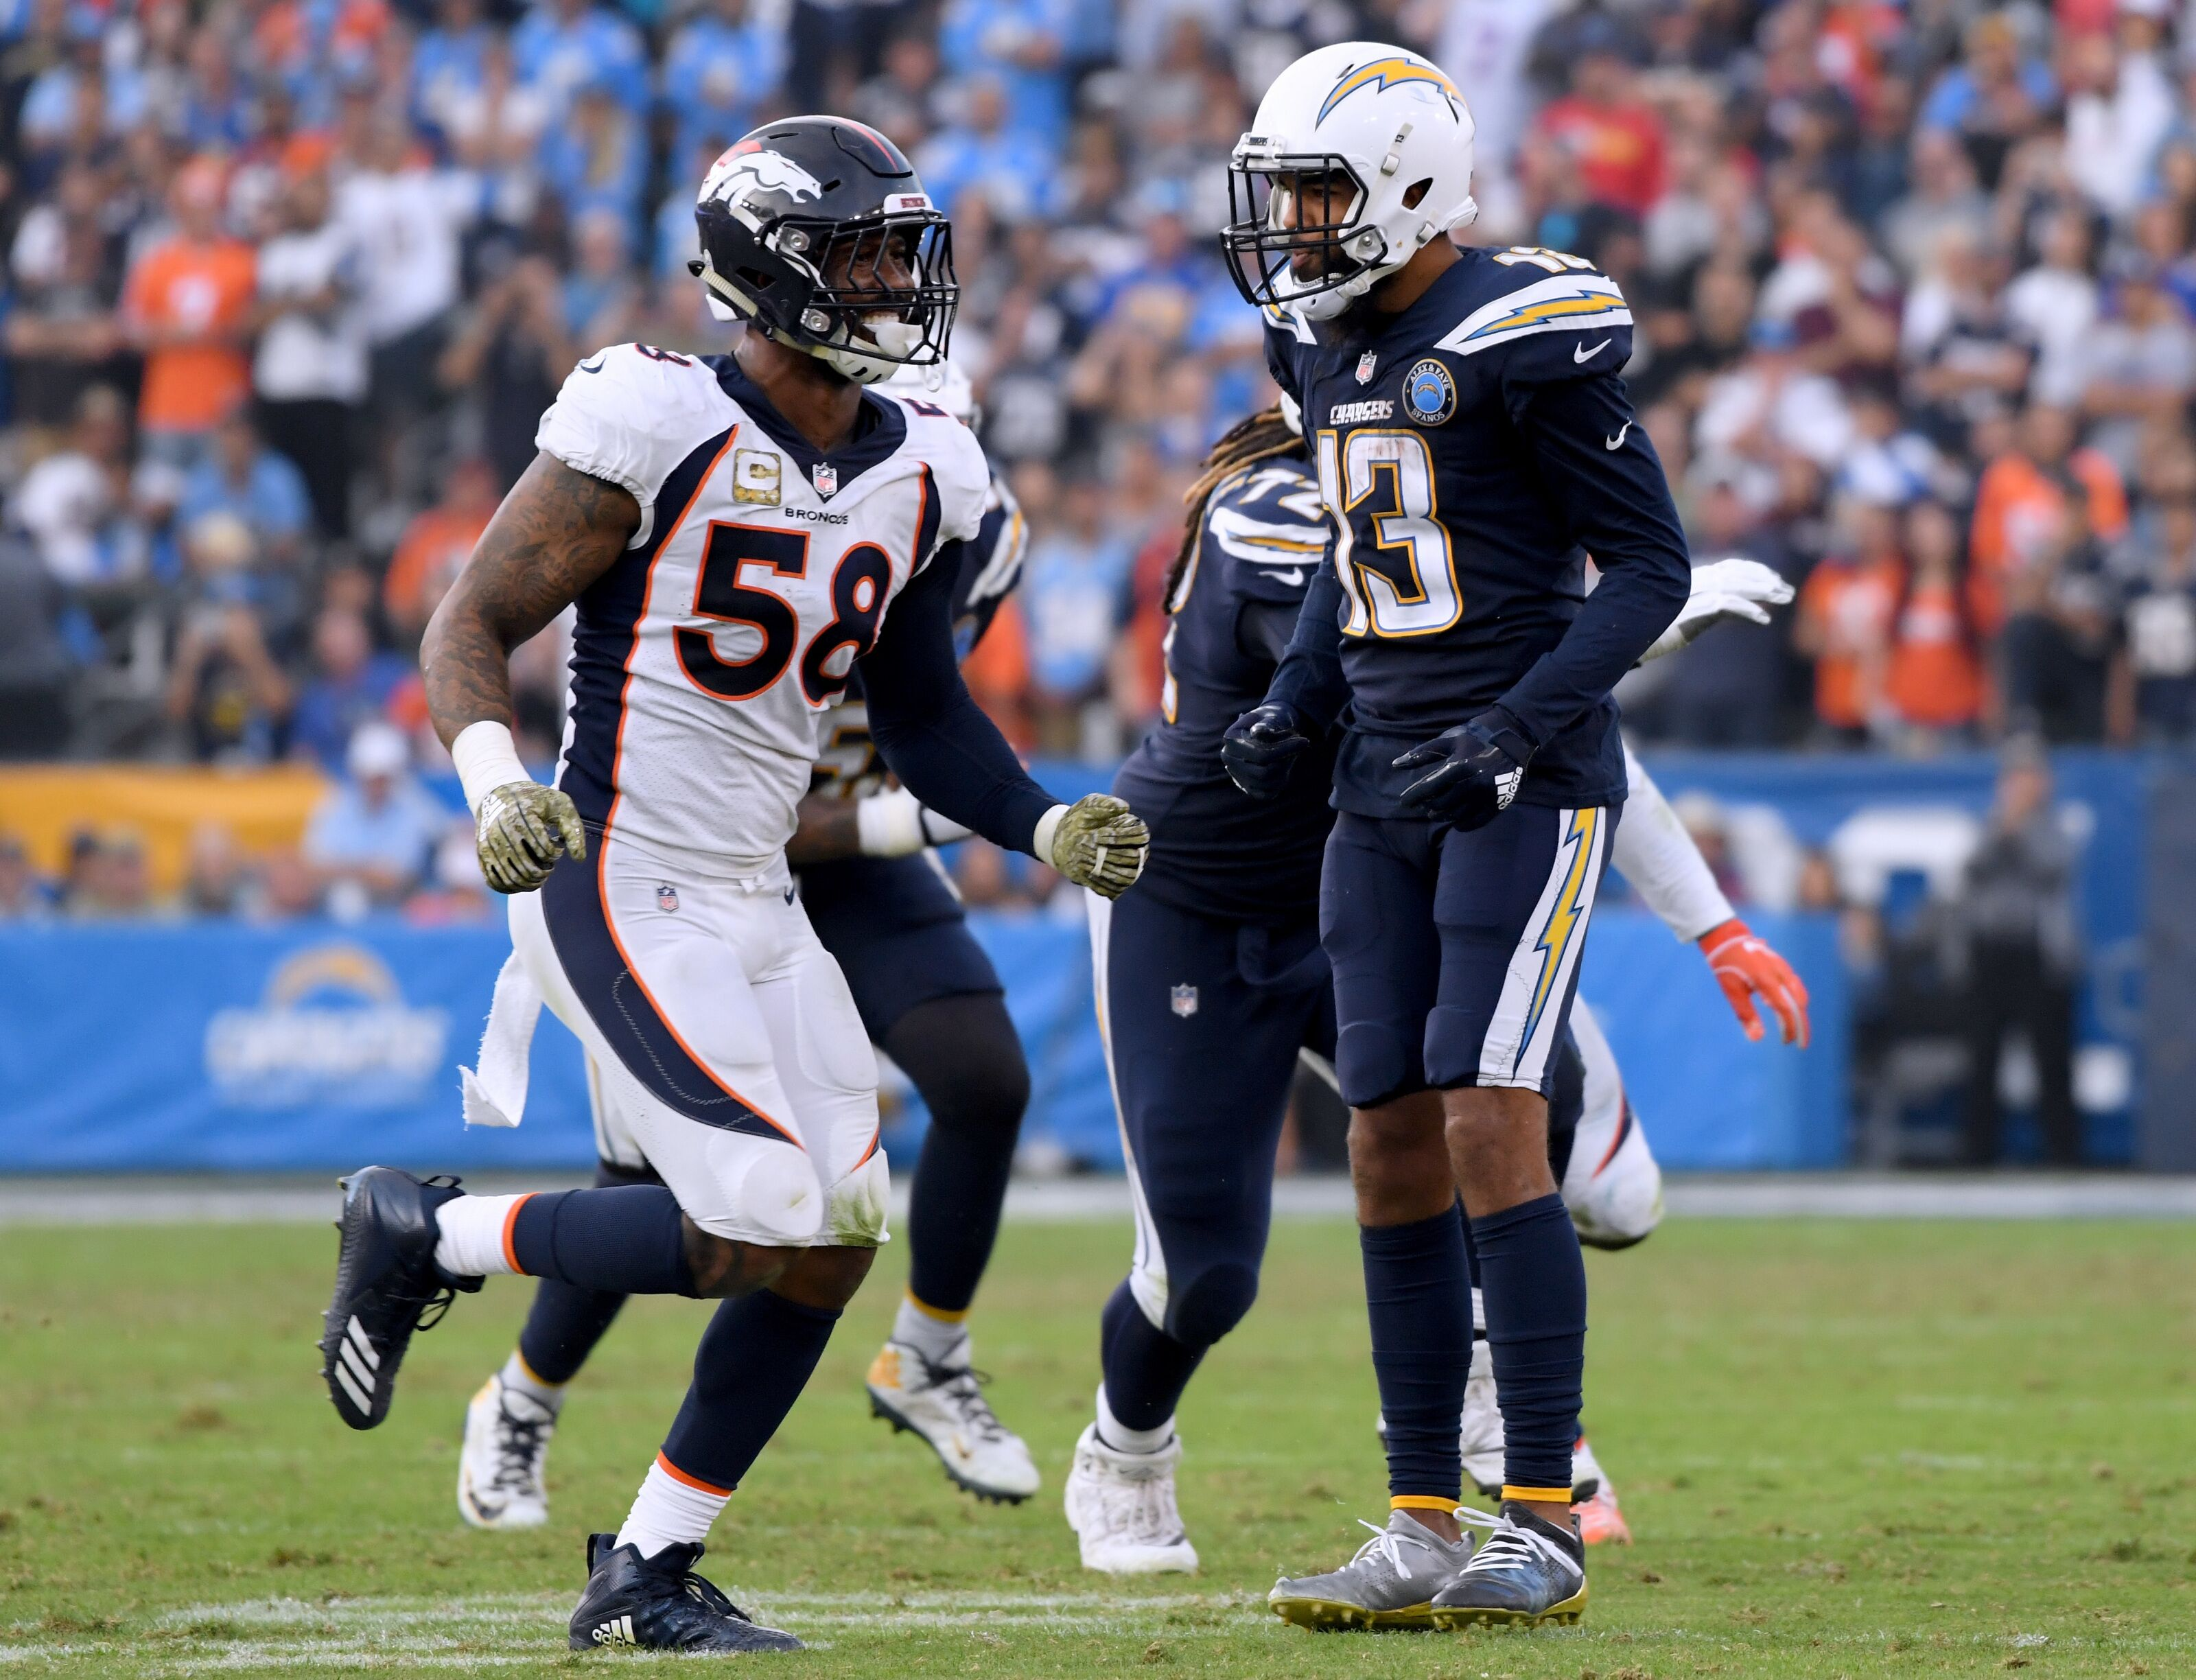 Week 5 Preview: Denver Broncos at Los Angeles Chargers